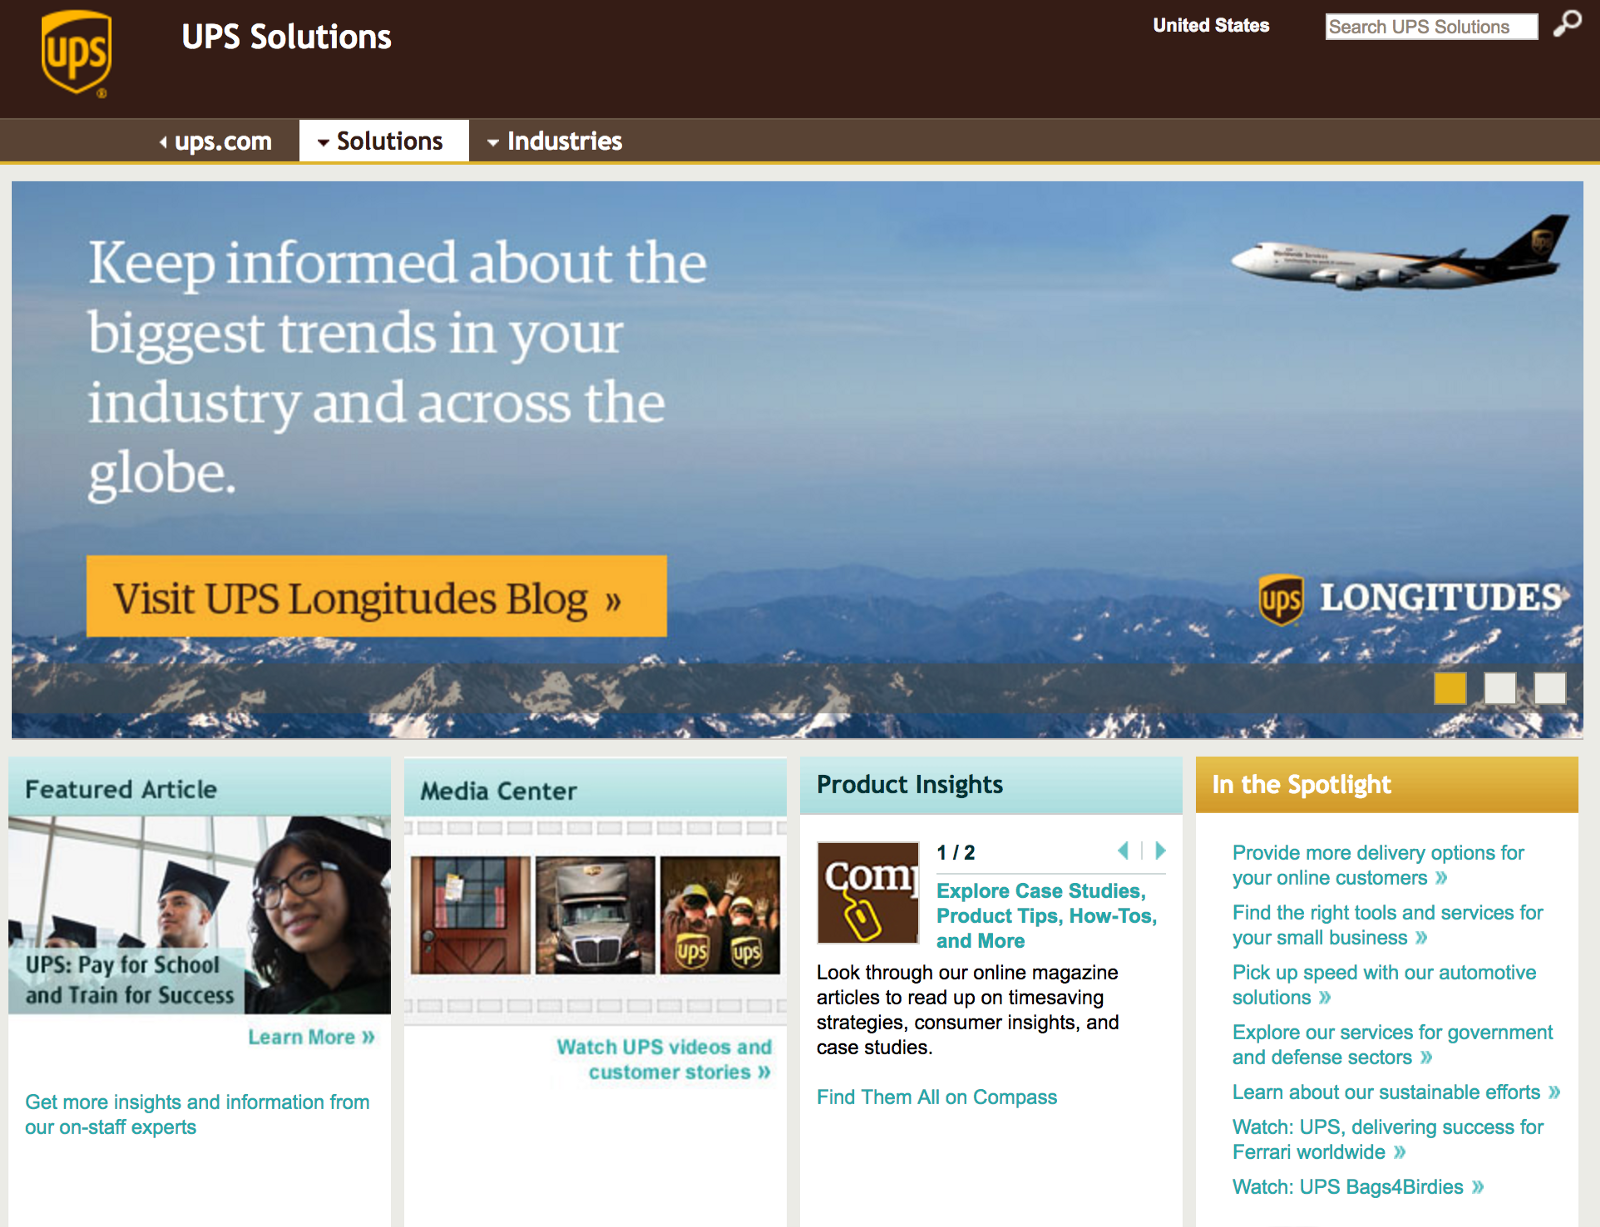 72a4c1892db98 In the case of United Parcel Service (aka UPS), the company breaks the  model by focussing on solutions and industries, as opposed to products and  solutions, ...